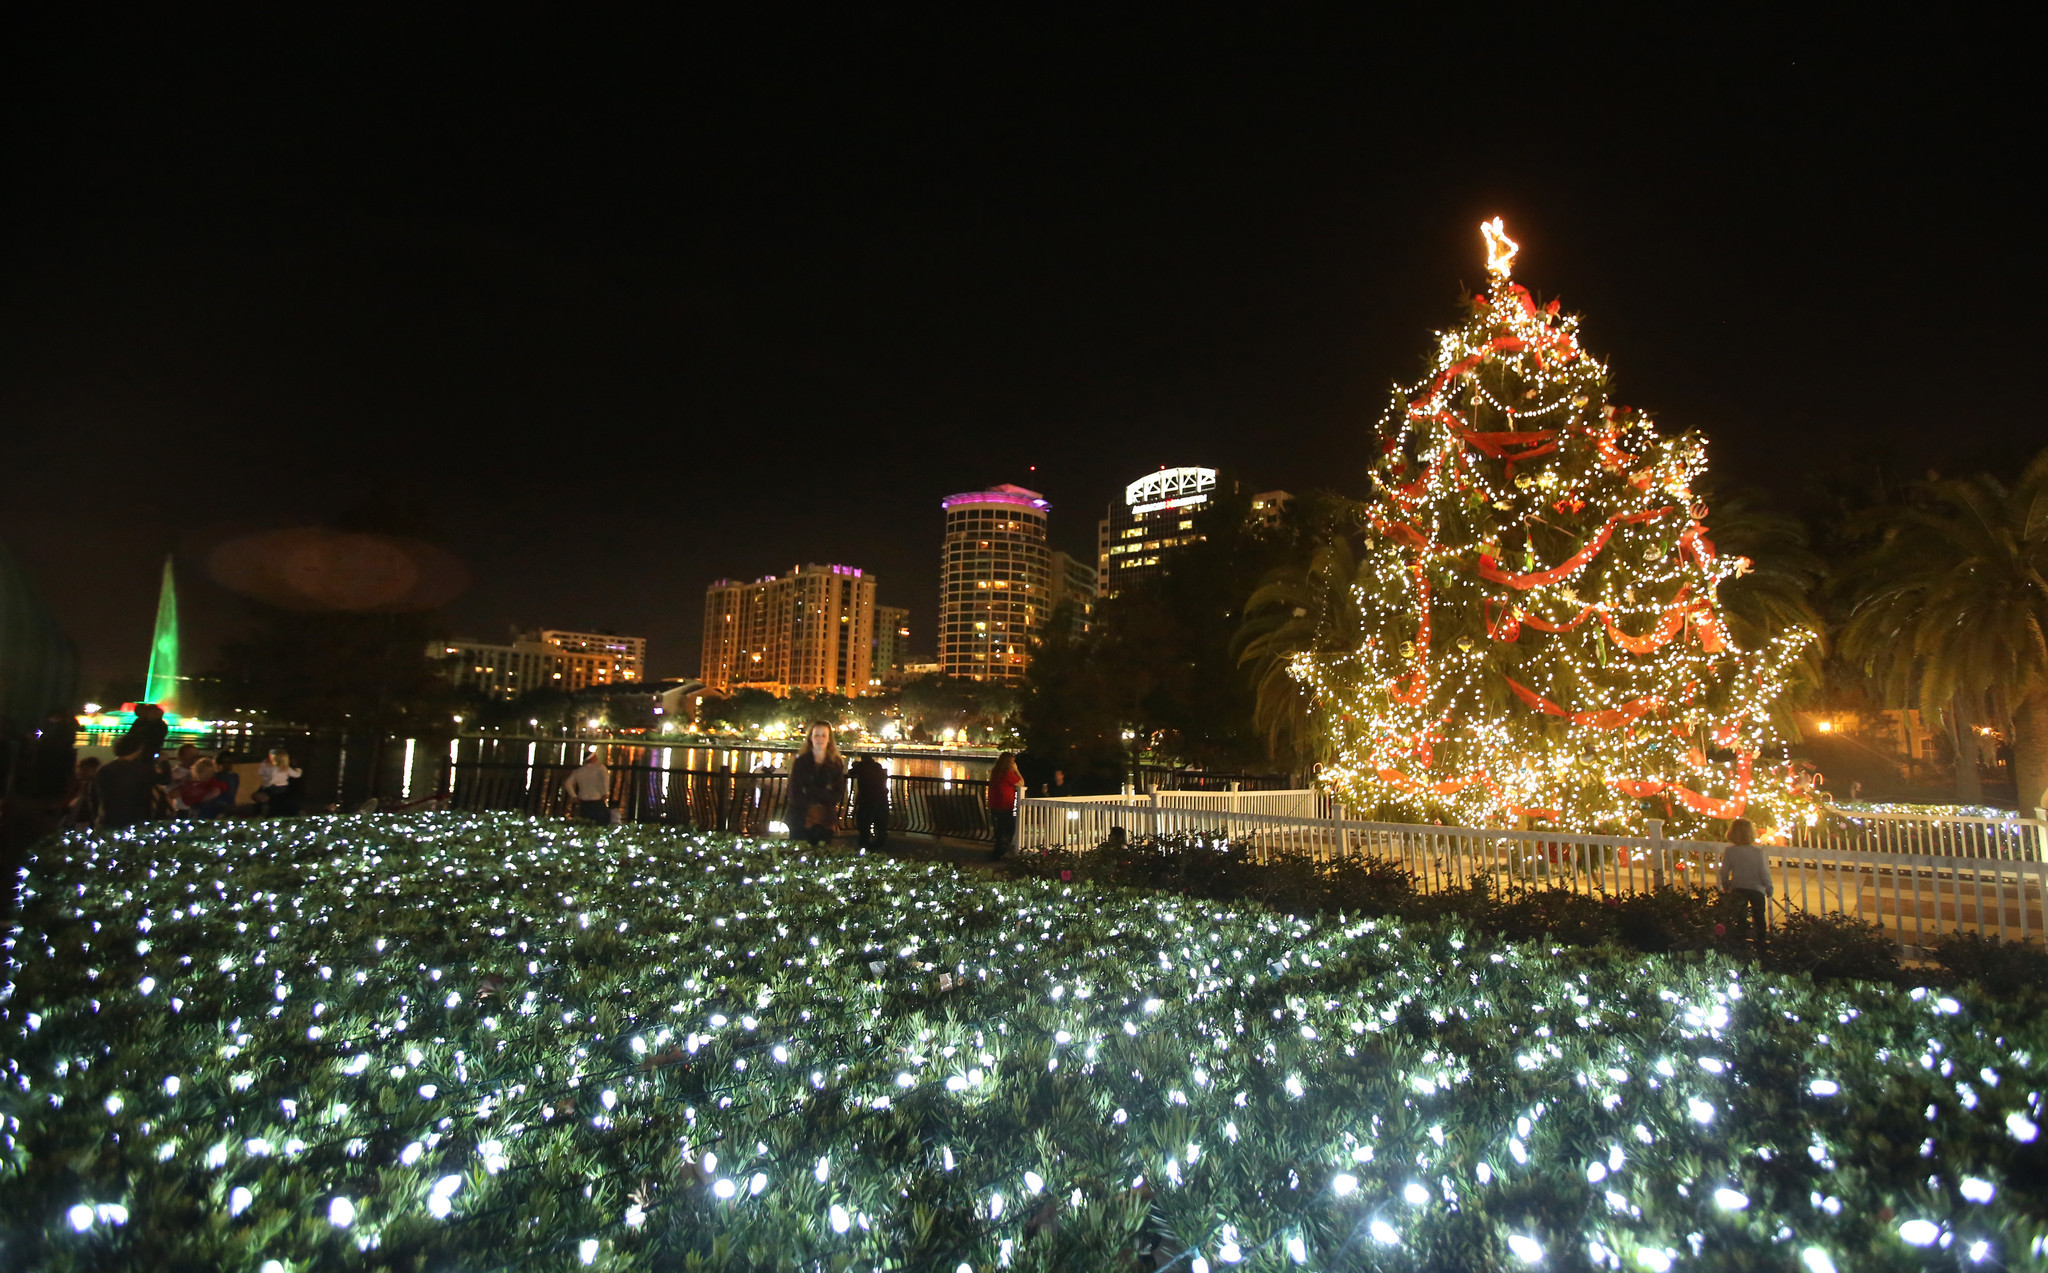 Pictures: Holiday lights from around the globe - Christmas in Orlando